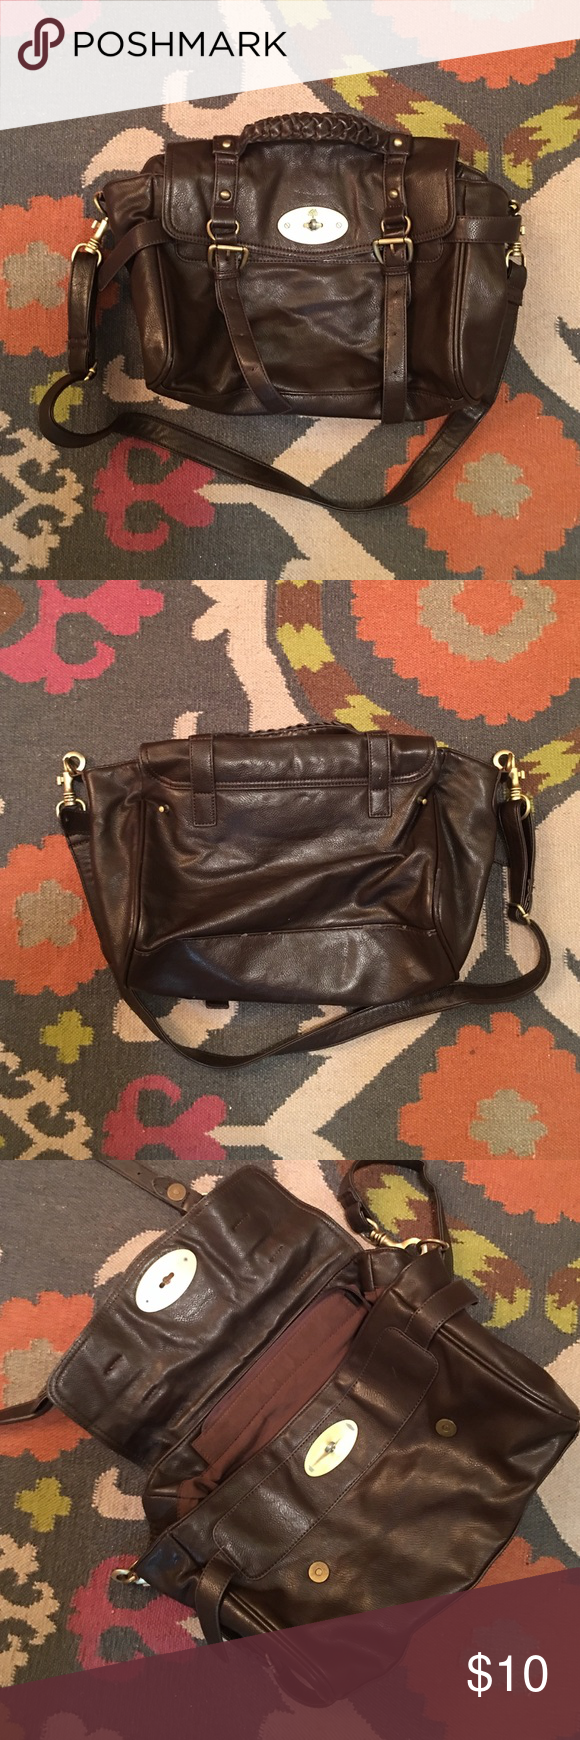 eb6771b9c65 MULBERRY Alexa lookalike Dark Brown Bag Purse MULBERRY Alexa knockoff dark  brown purse that I got at the thrift store. Used but good condition.